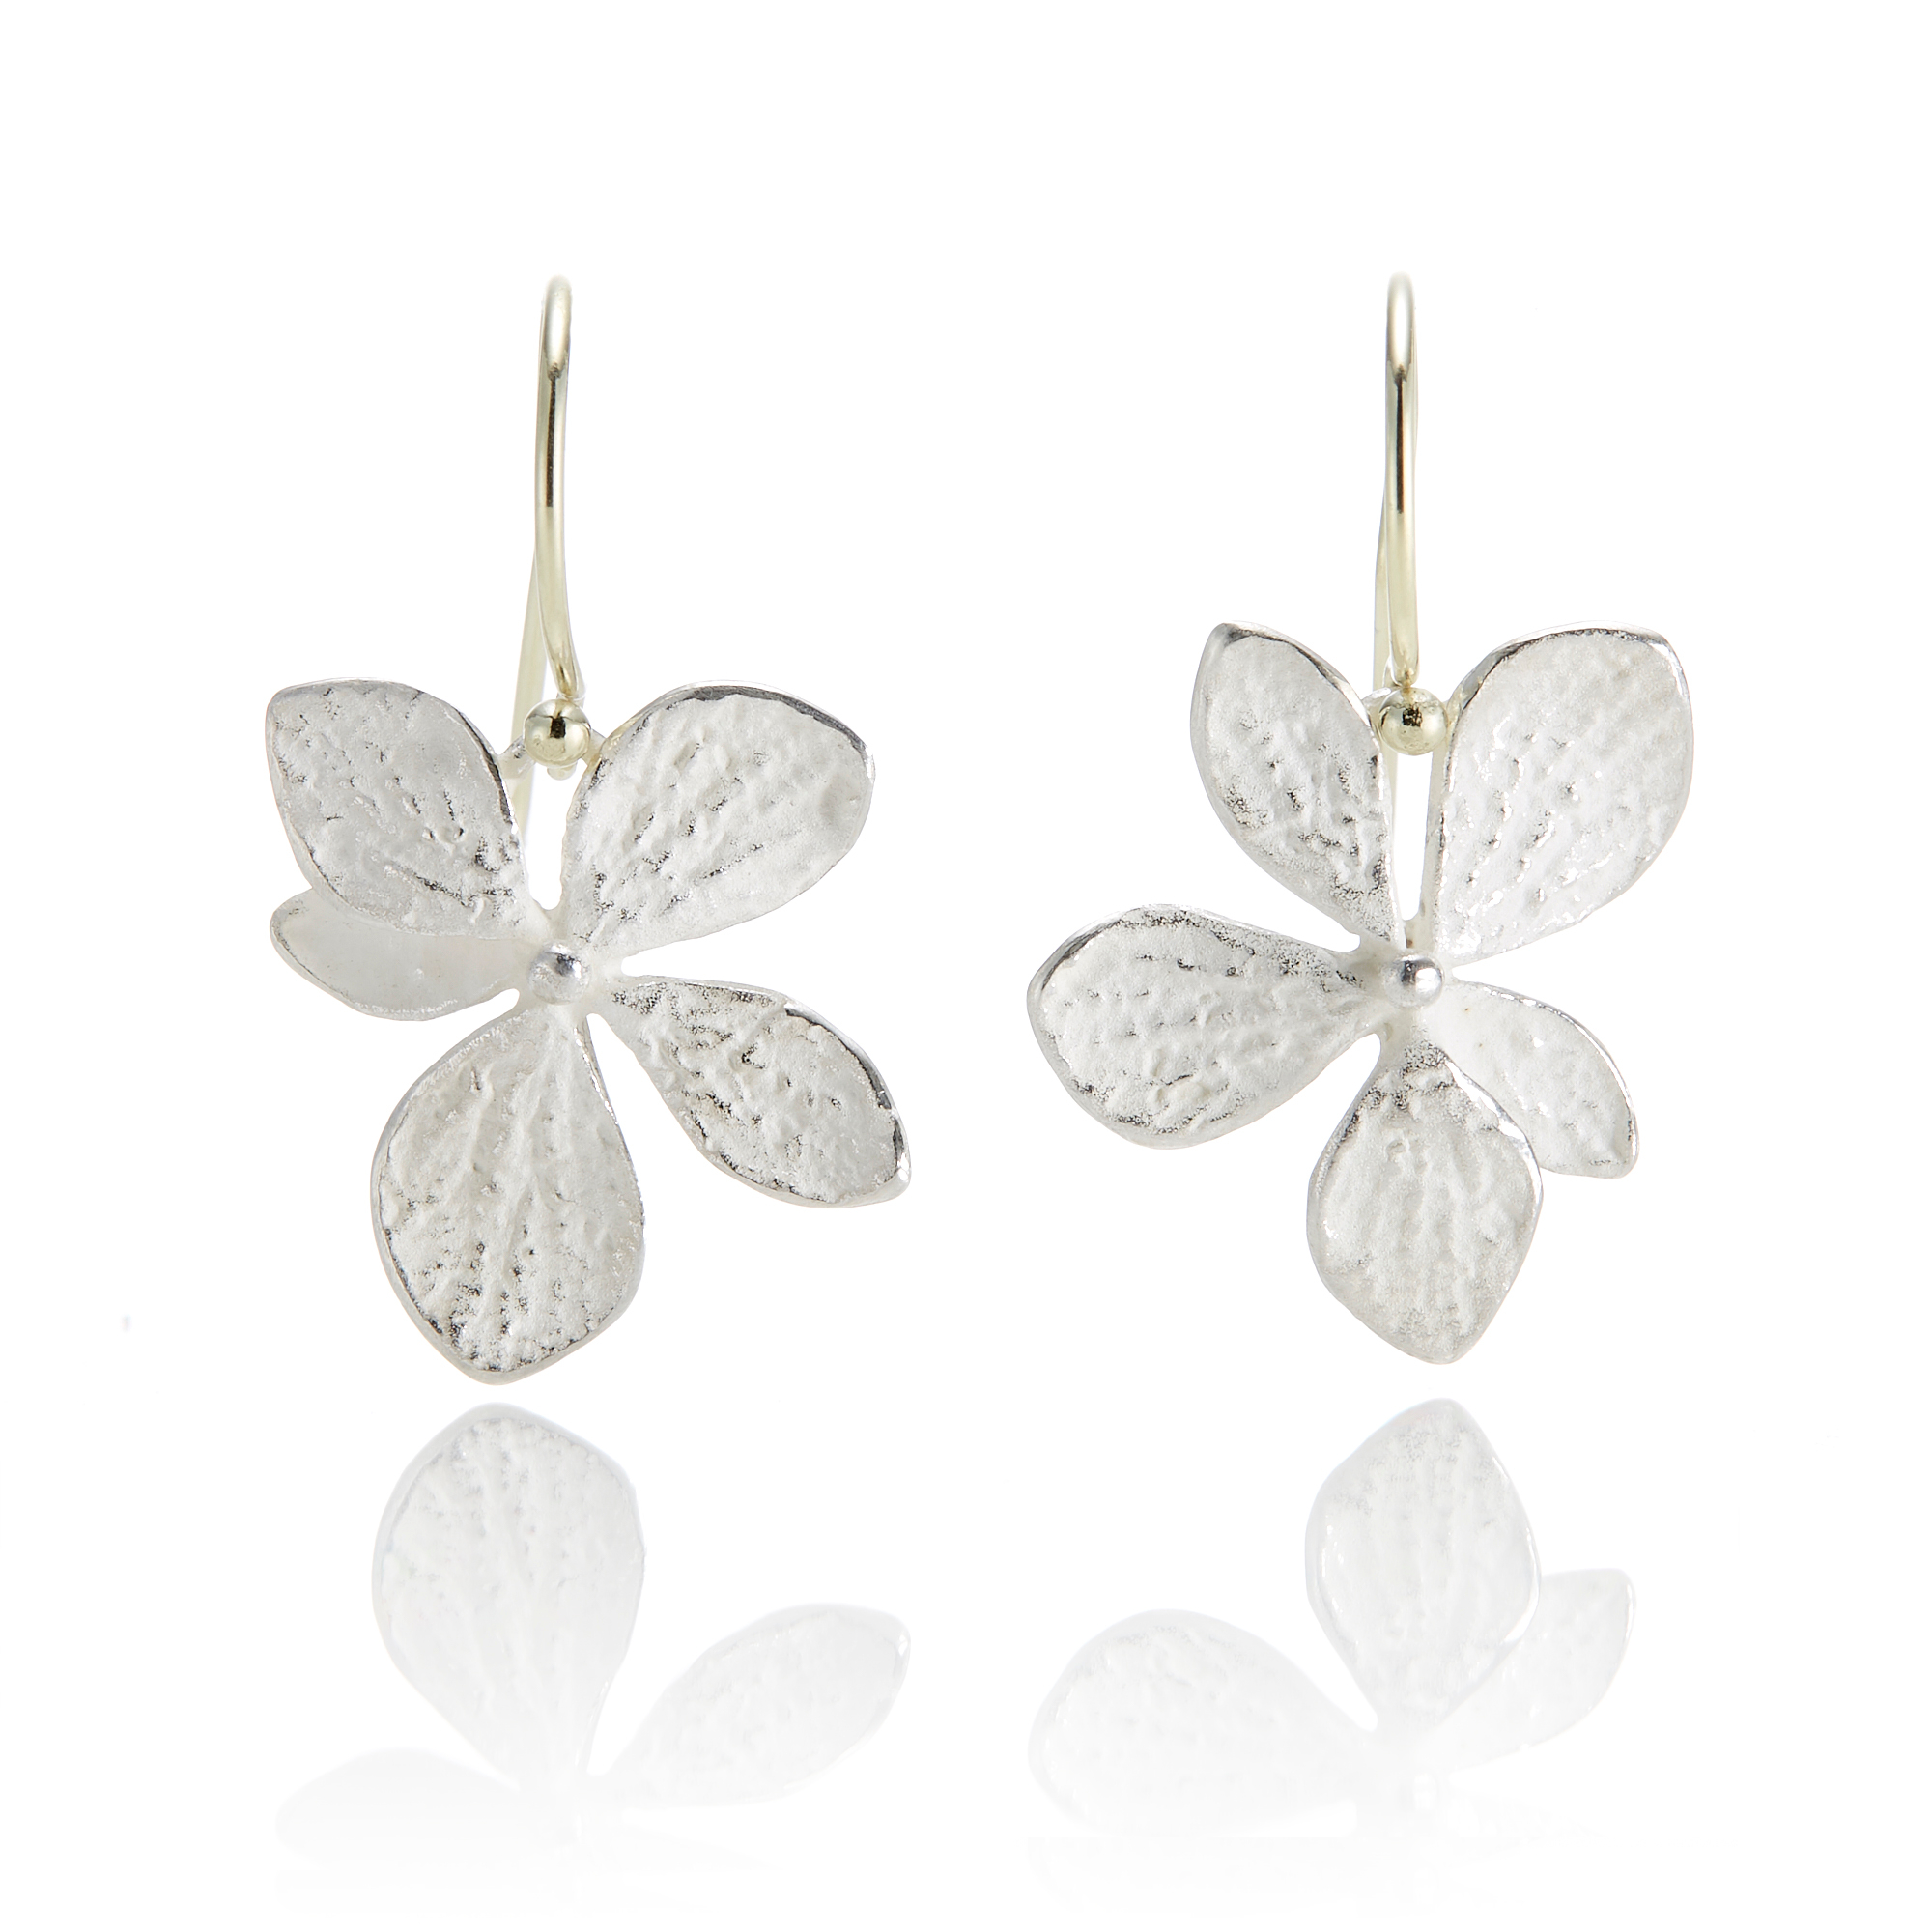 John Iversen Sterling Silver Single Hydrangea Drop Earrings